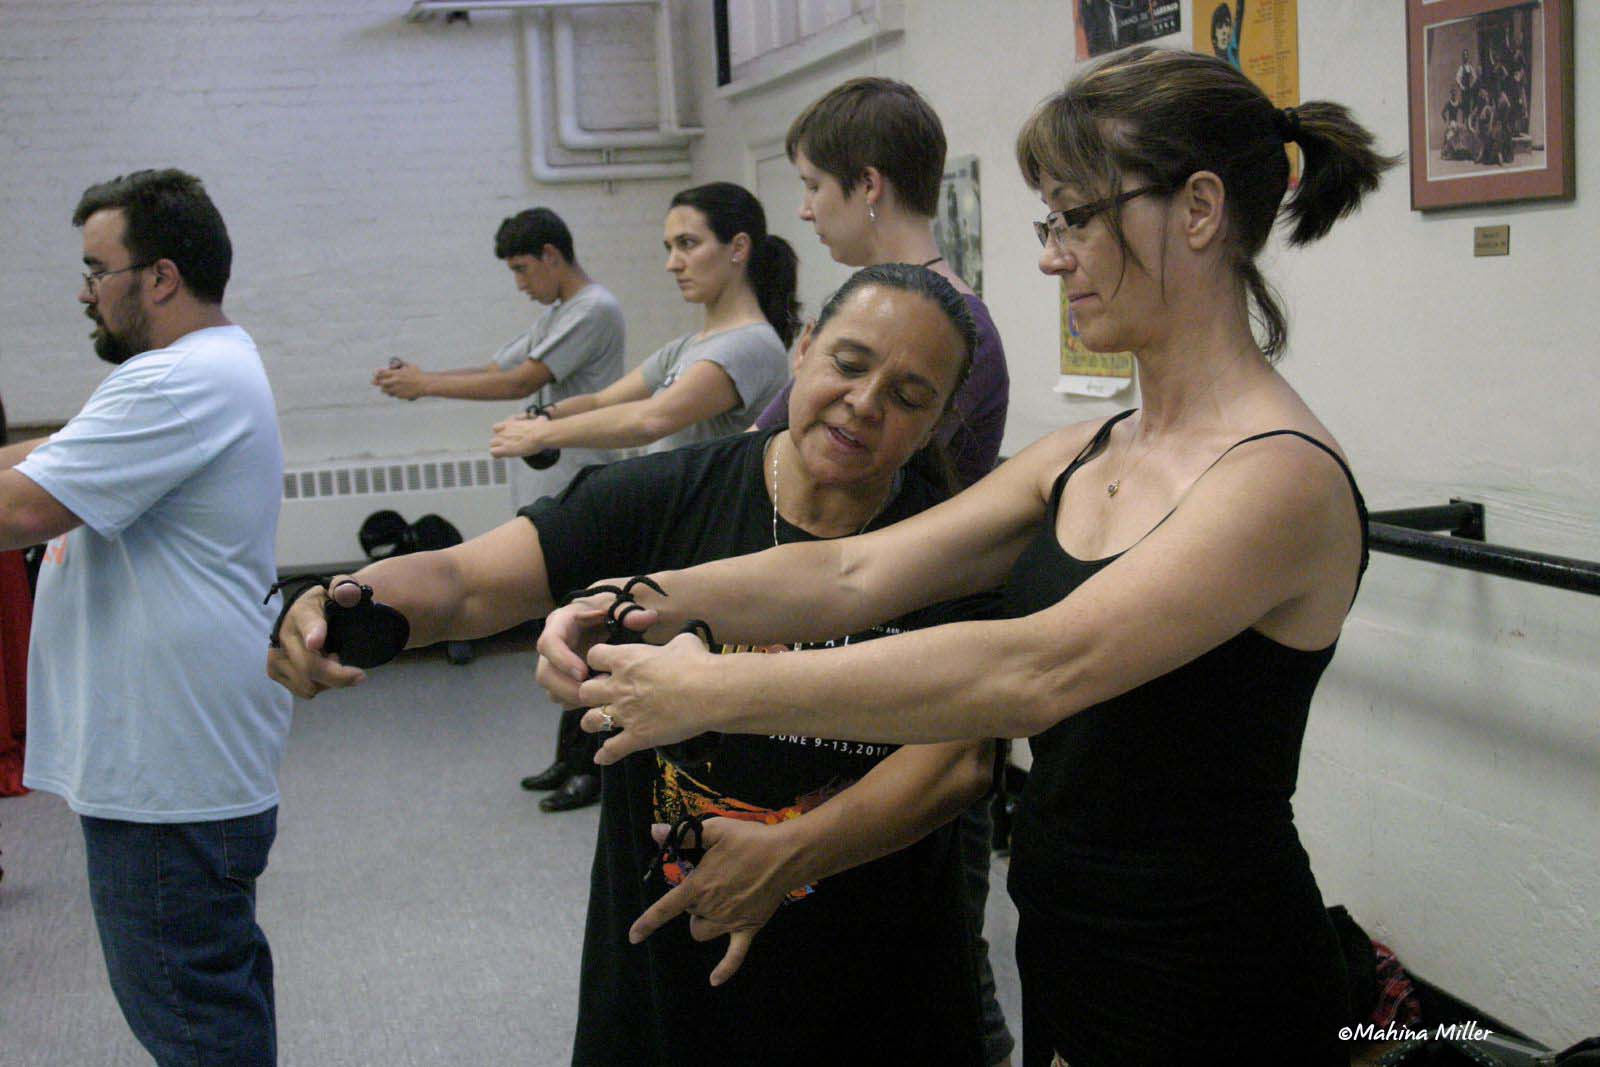 National Institute of Flamenco, Eva Encinias Sandoval teaching at the Festival Flamenco Internacional in Albuquerque, NM